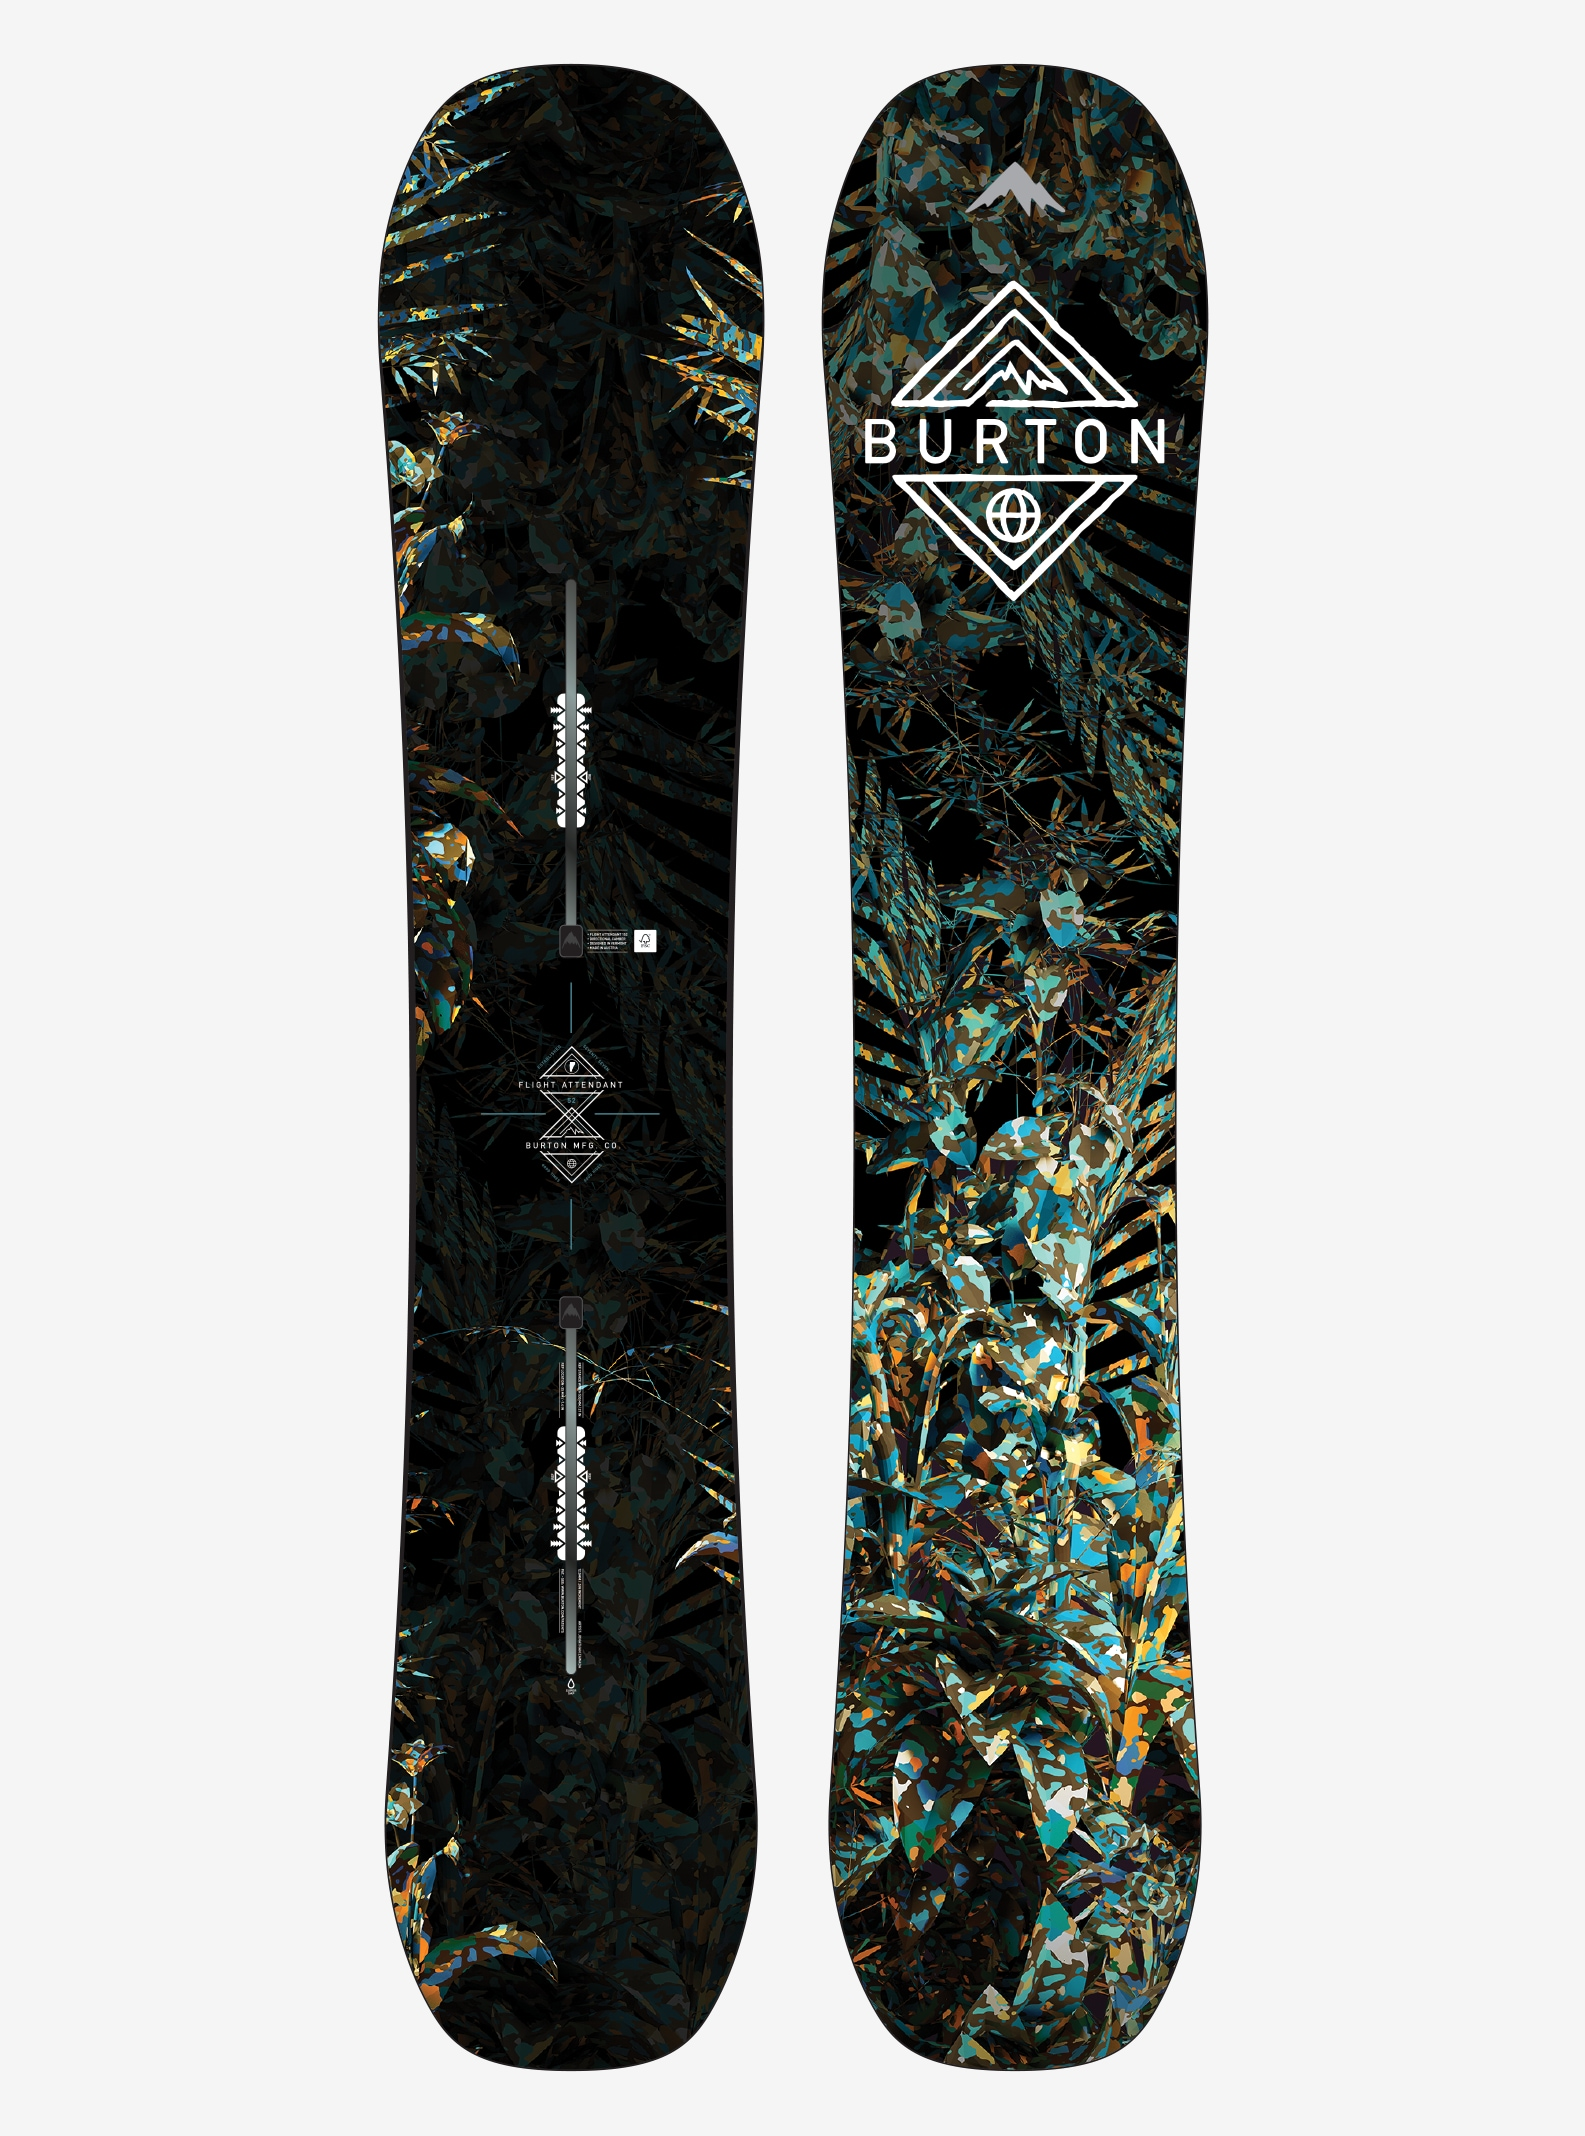 Men's Burton Flight Attendant Snowboard shown in 152